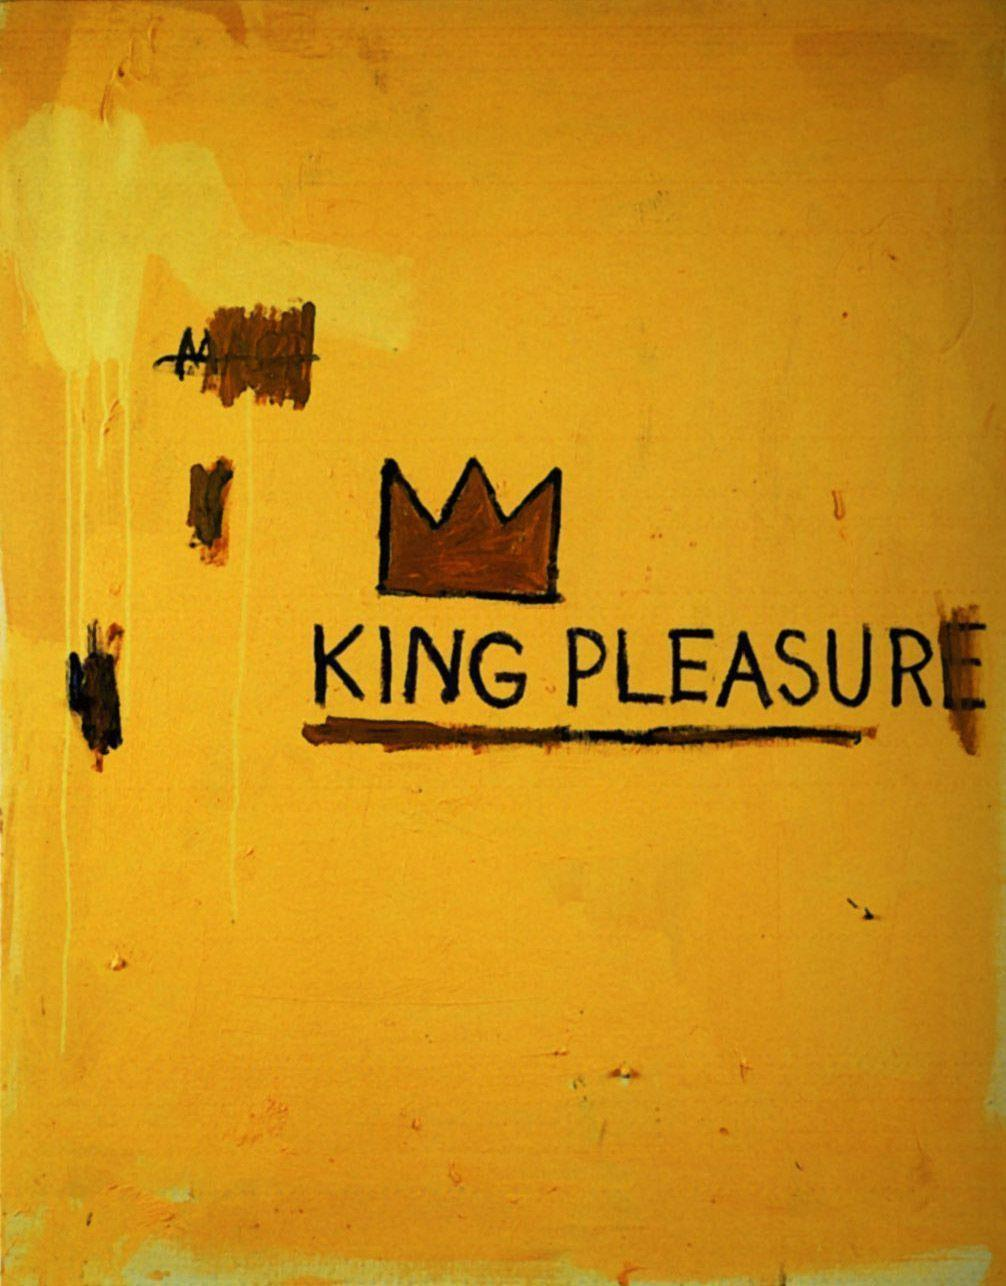 King Pleasure